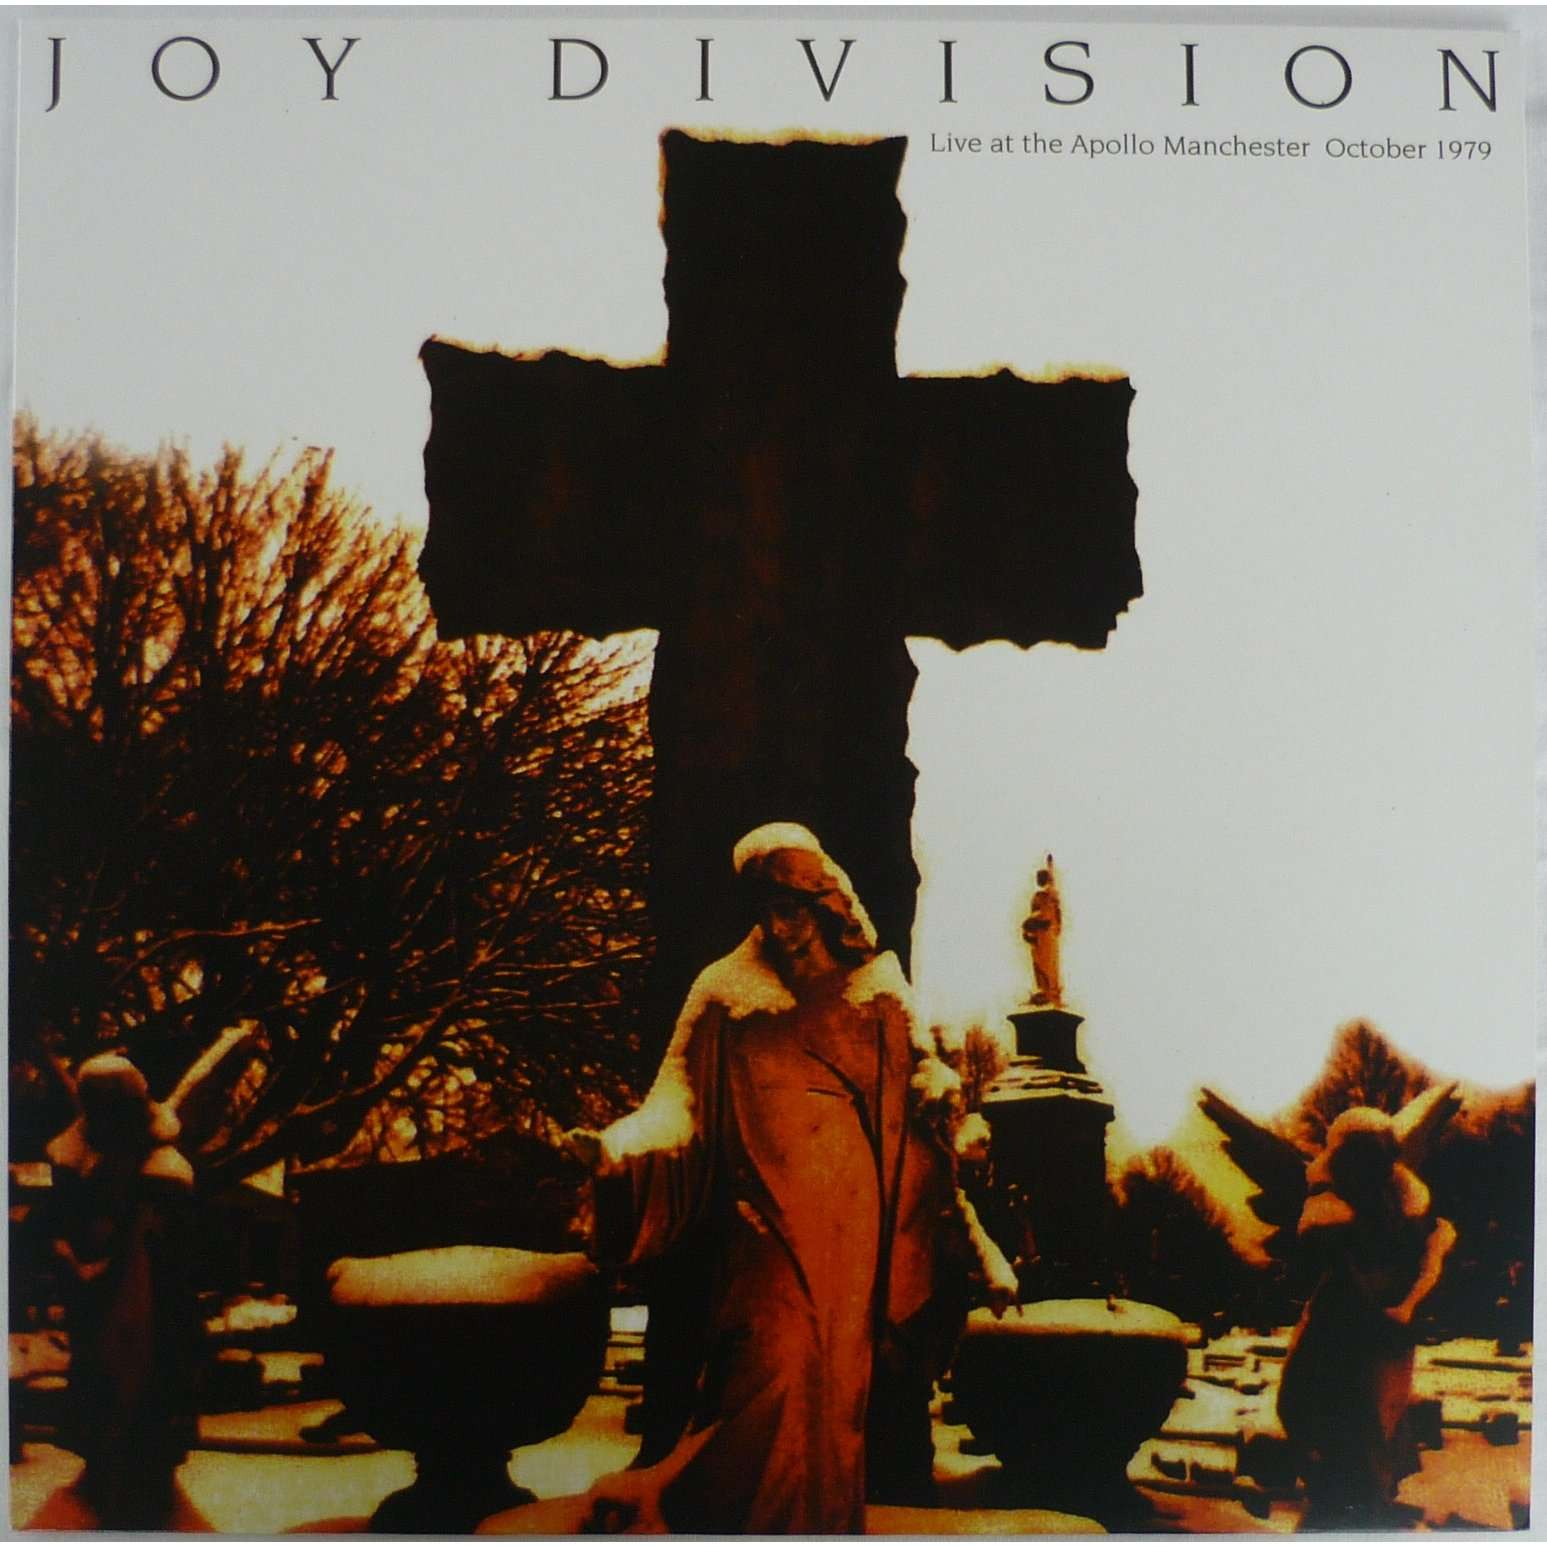 Live At The Apollo Manchester October 1979 By Joy Division